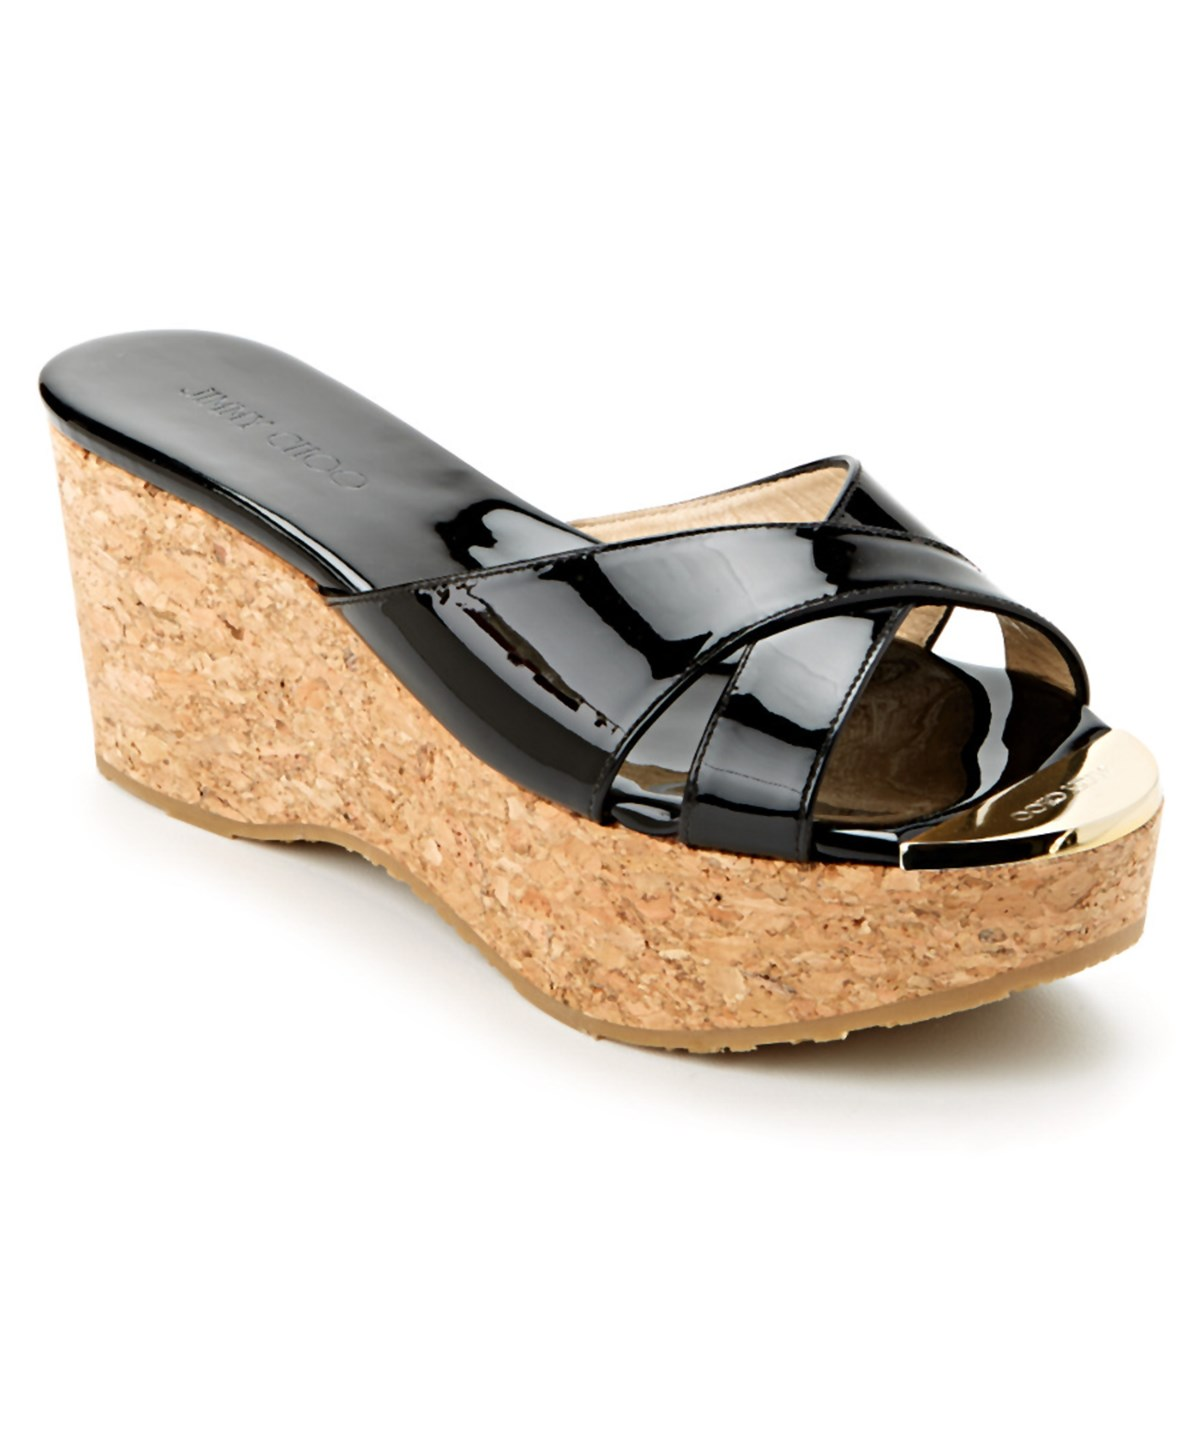 JIMMY CHOO PRIMA PATENT & CORK WEDGE SANDAL